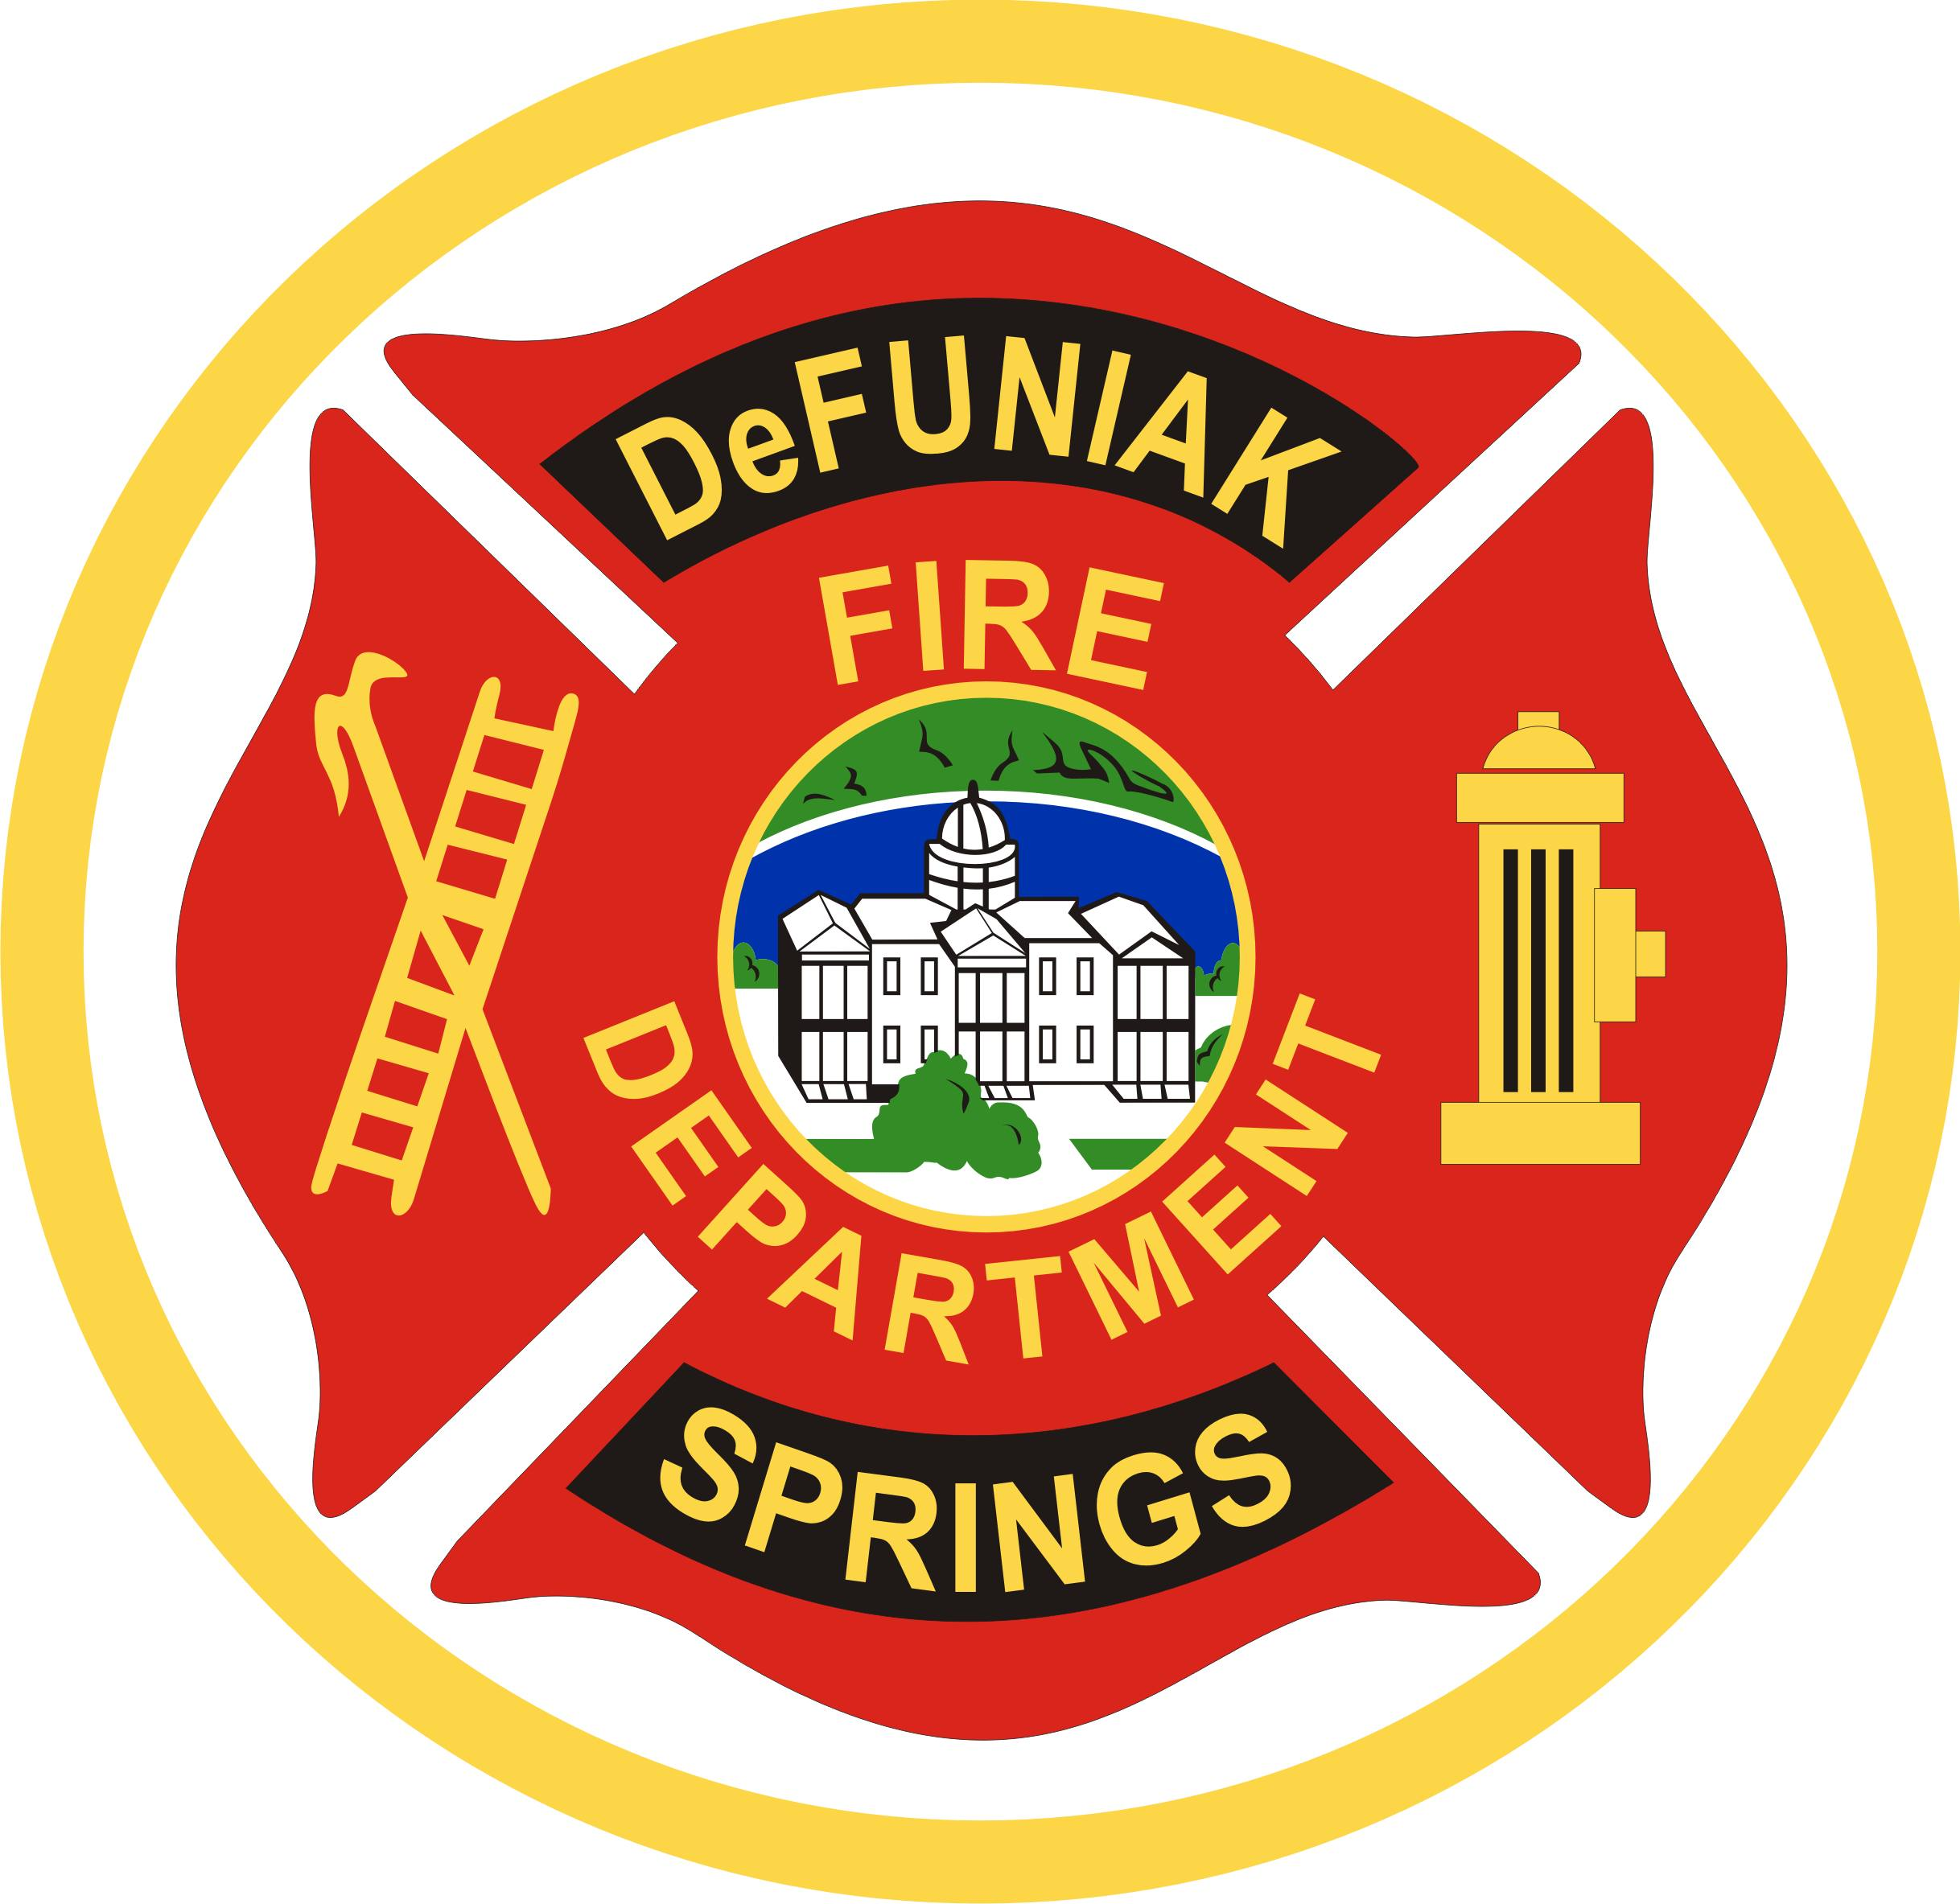 fire dept logo better.jpg